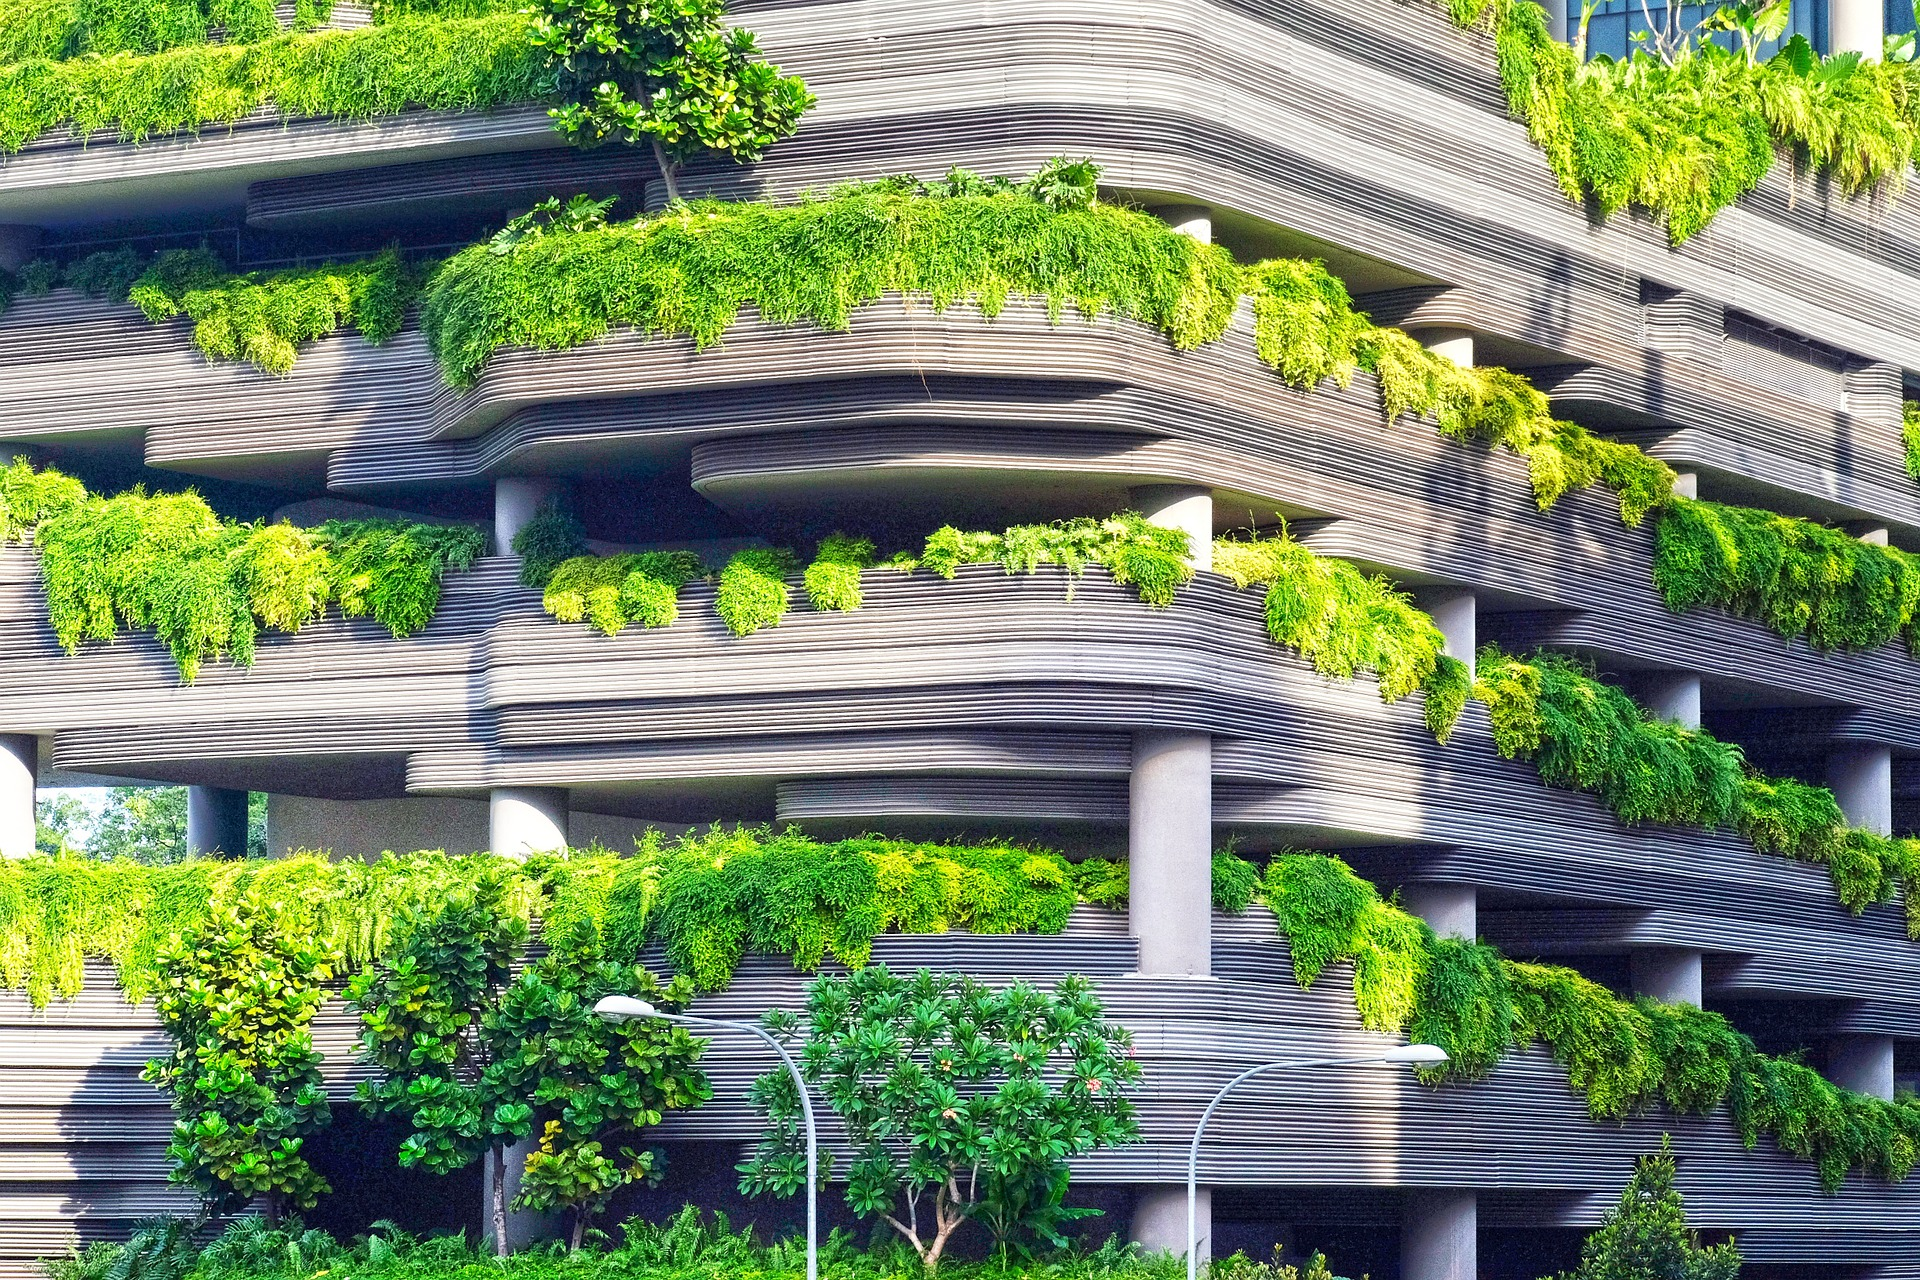 Plant material integrated with concrete structure symbolic of biomimetics